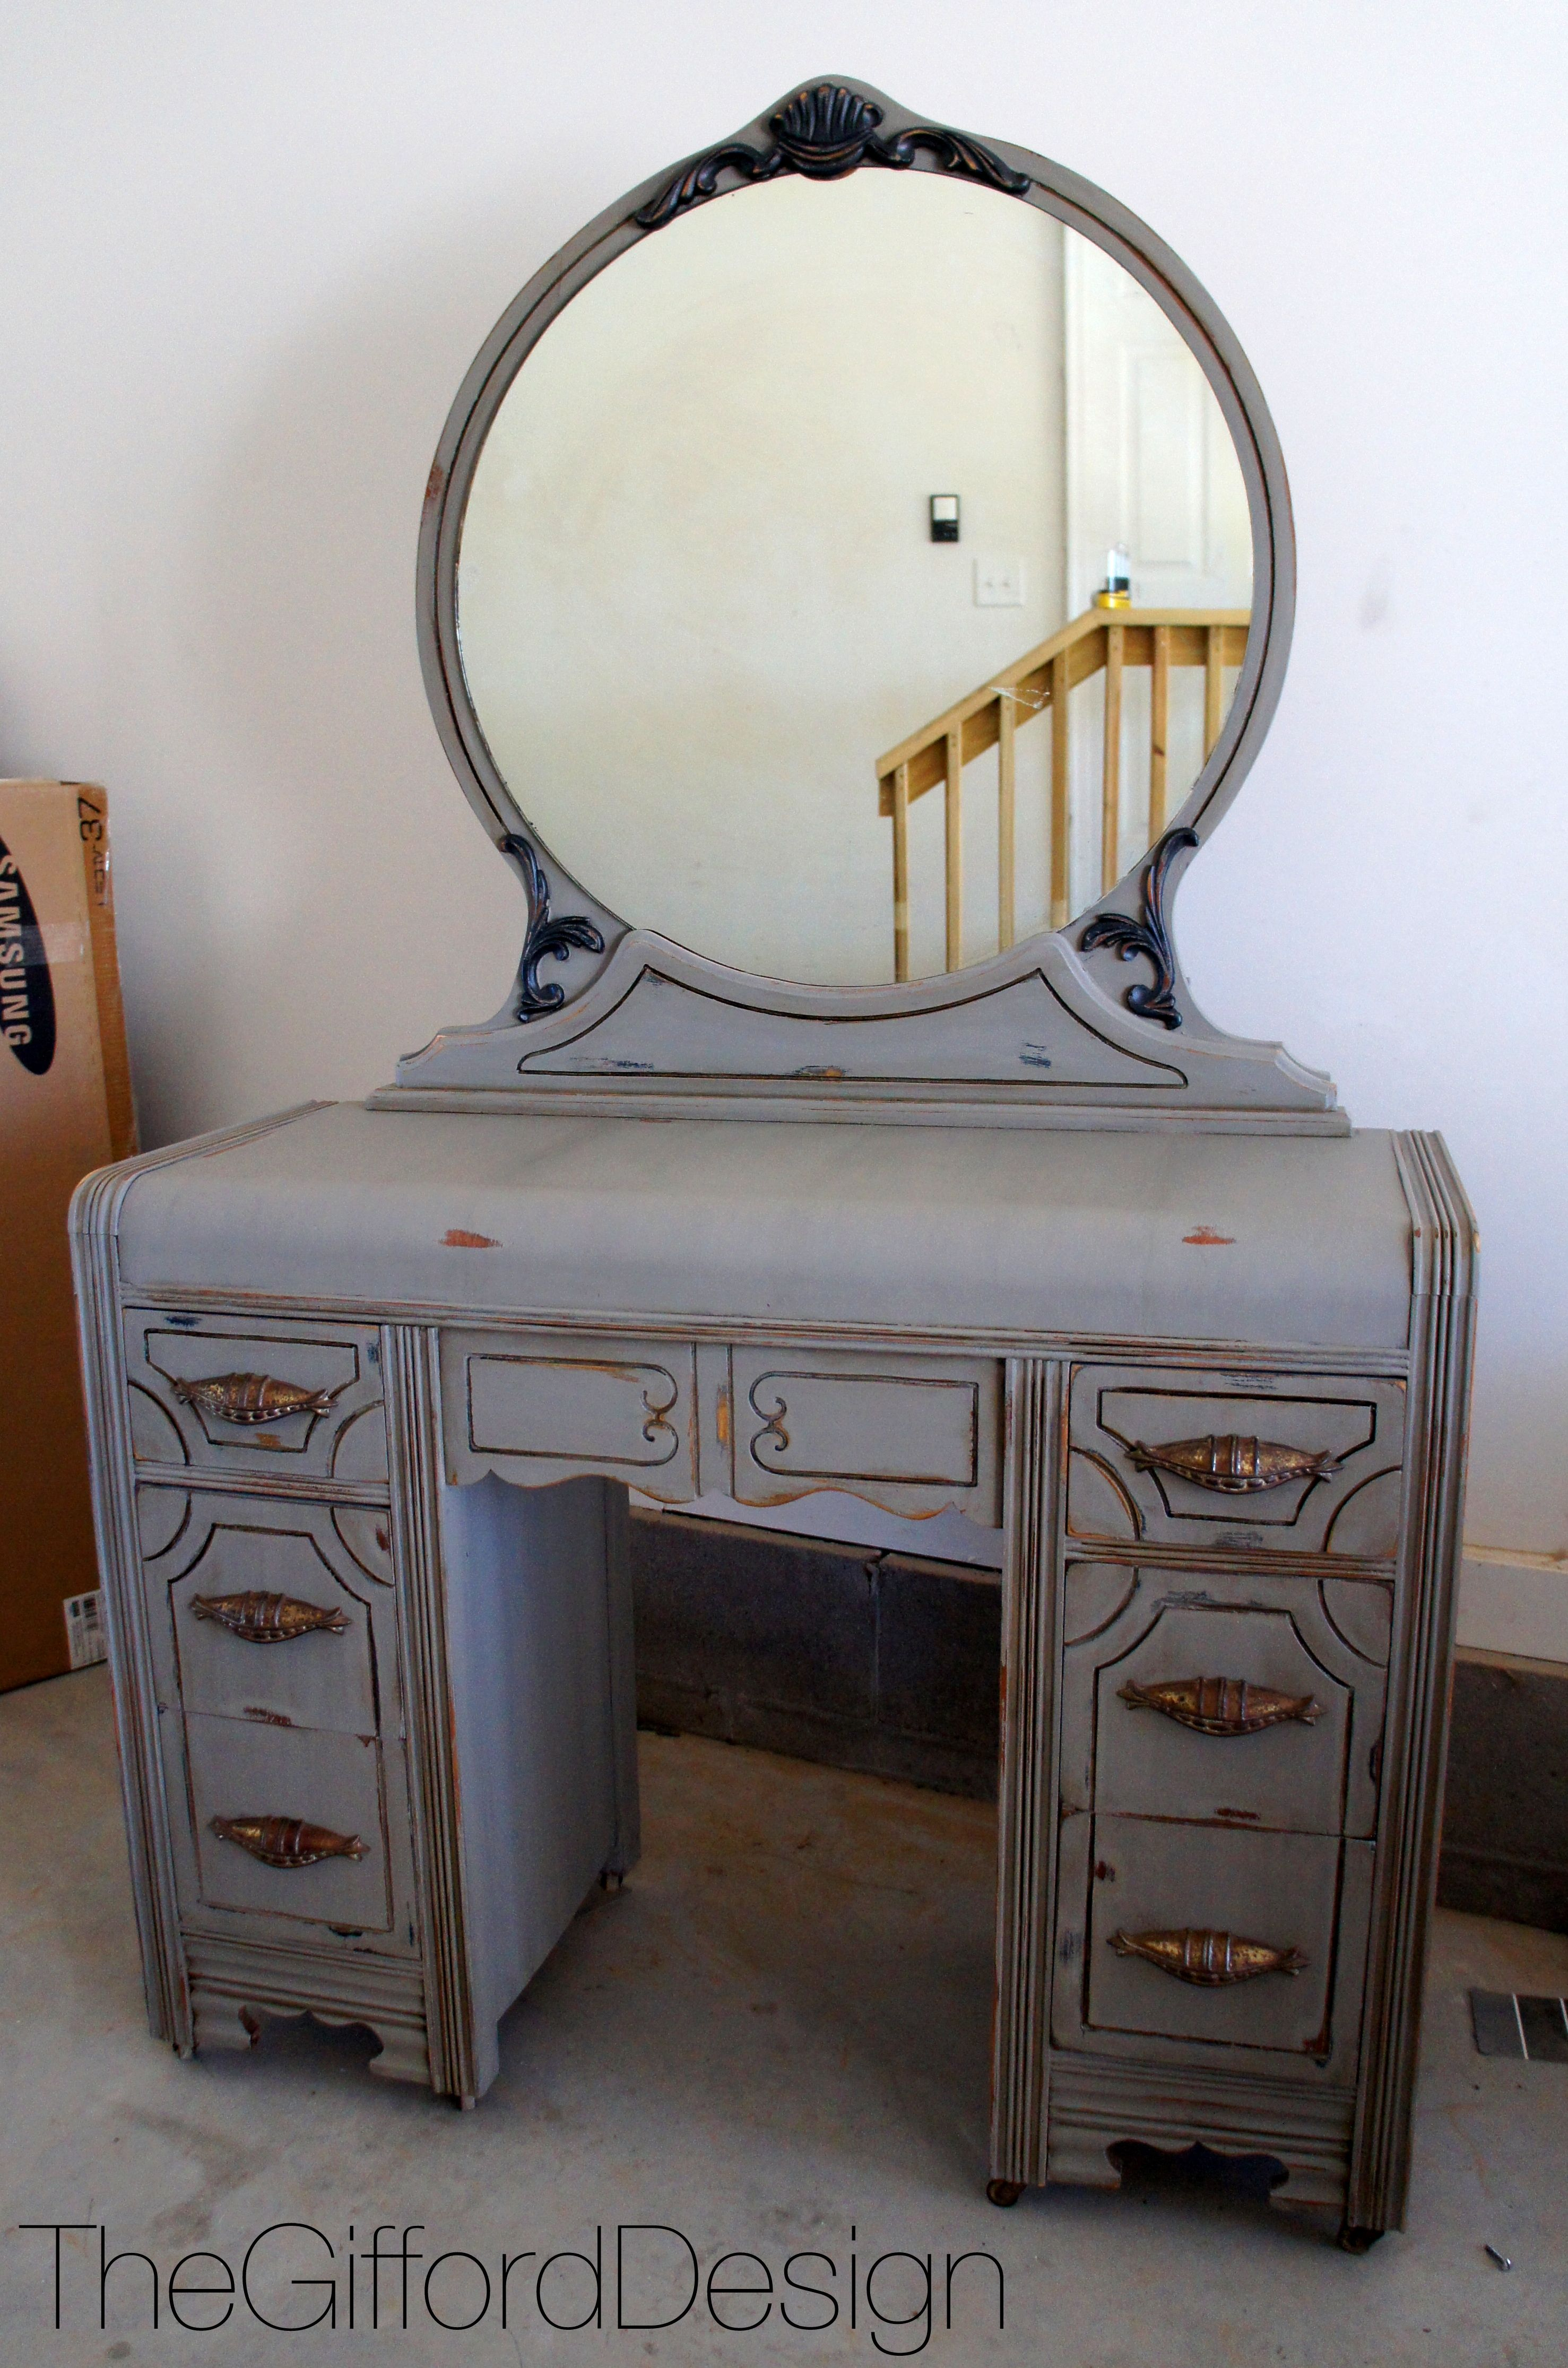 light table with maximum drawers ikea using lights perfect show way by furniture makeup and pin beauty vanity in